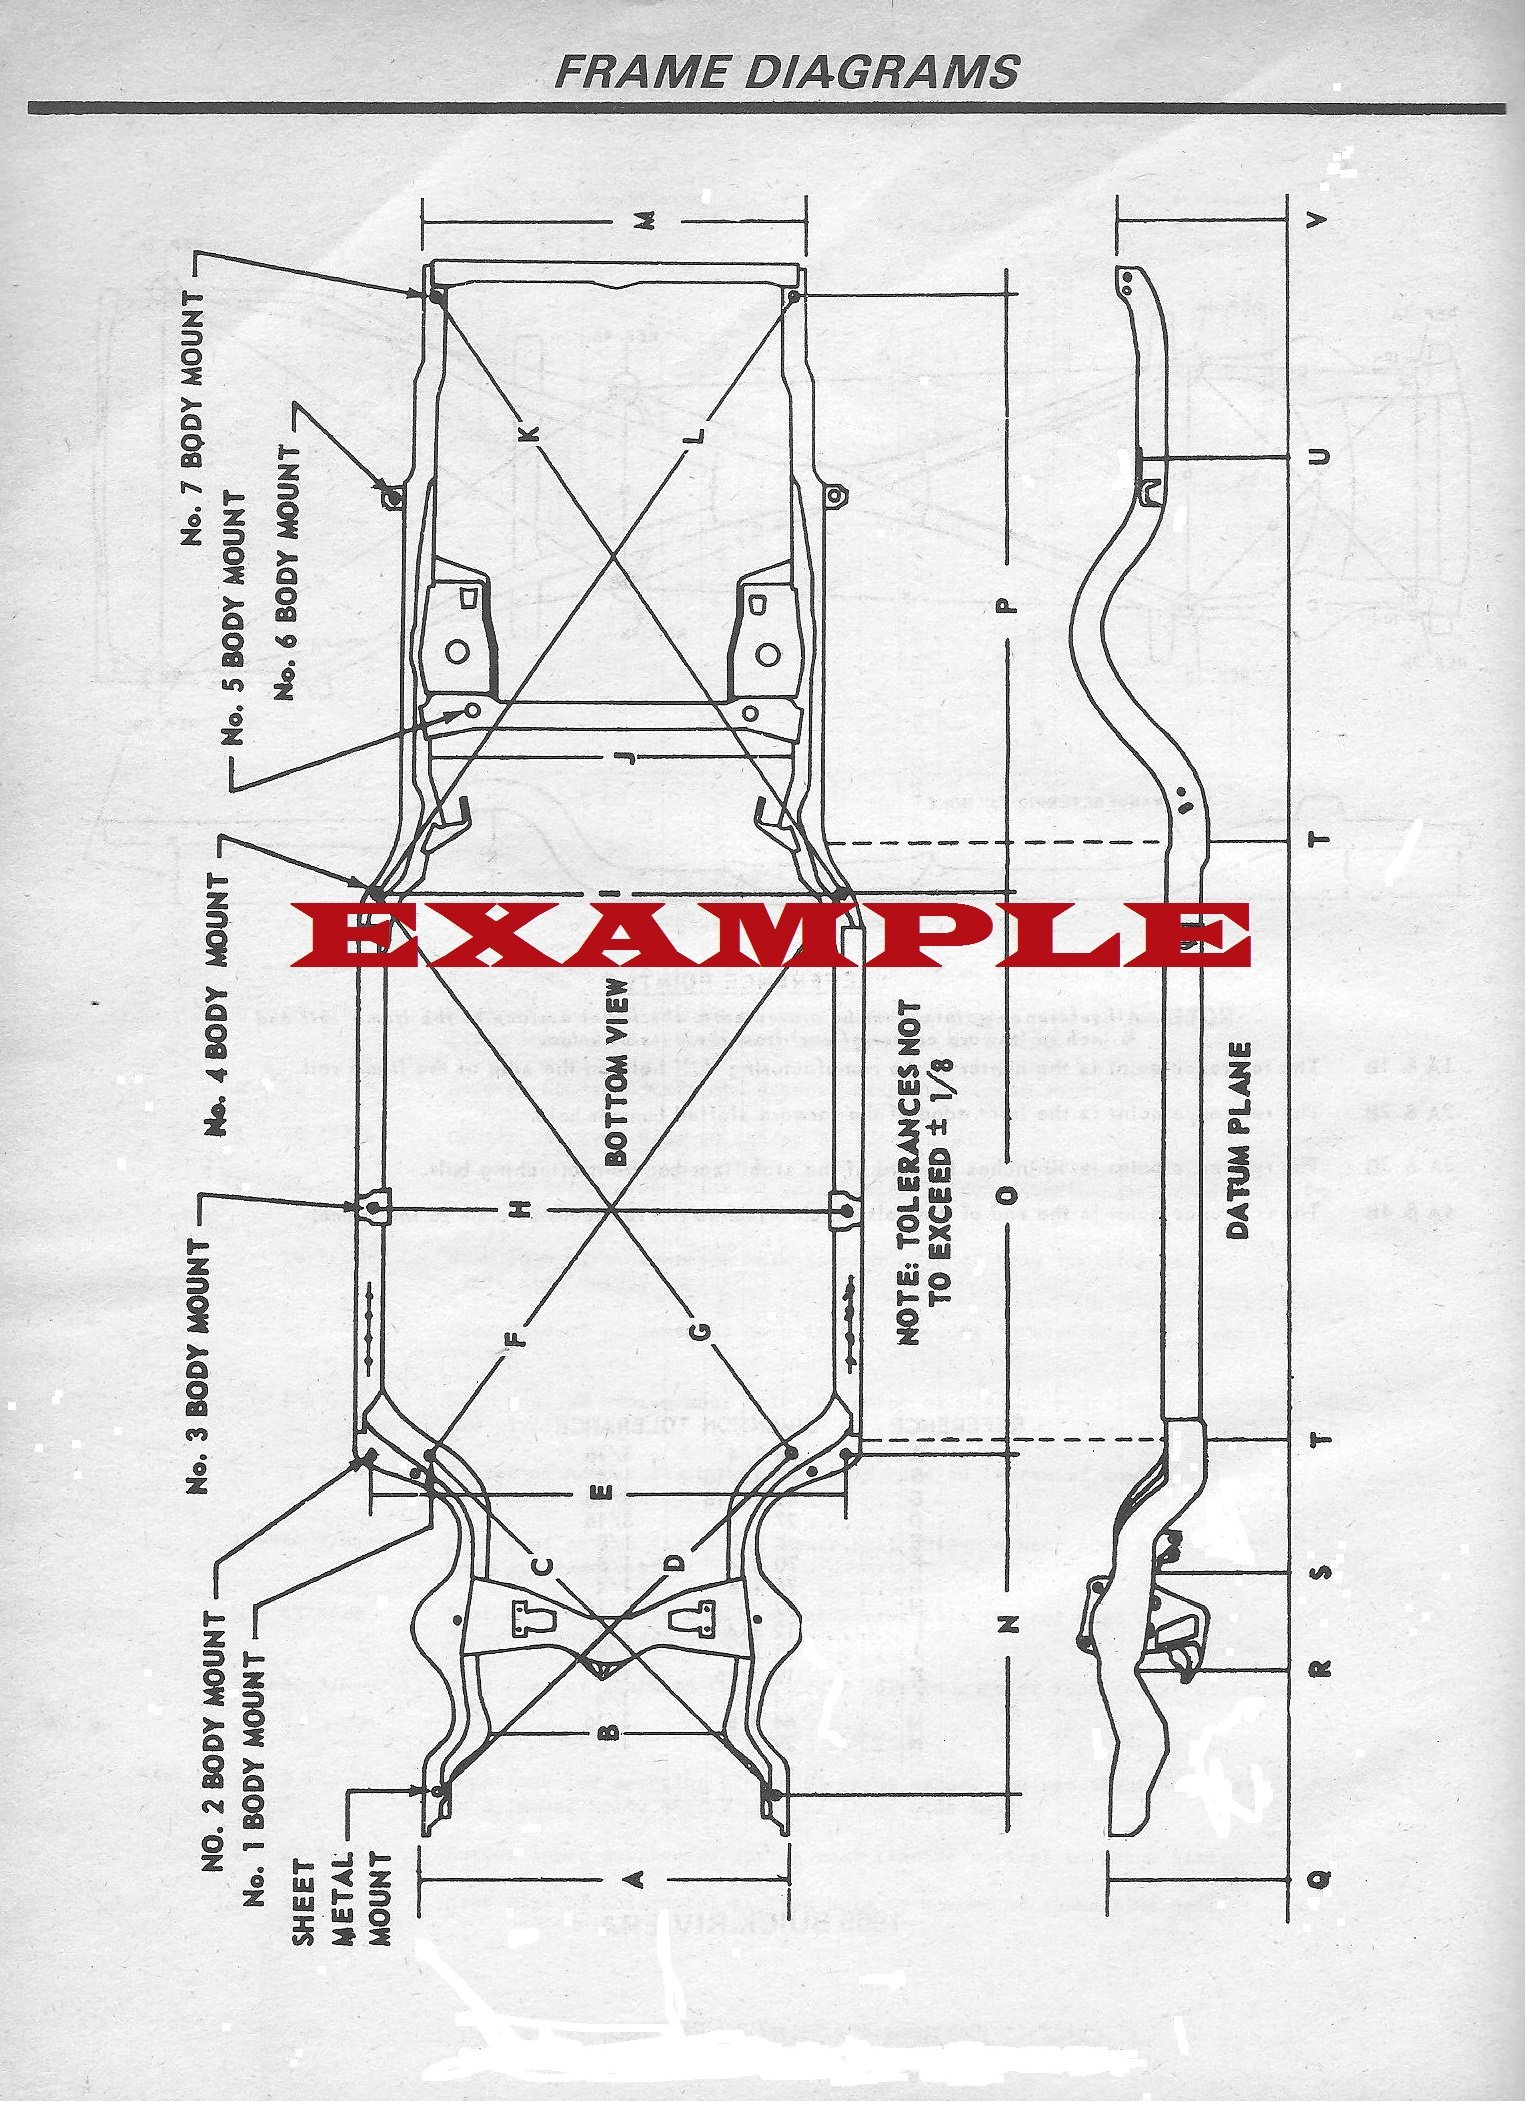 1964 1969 Amc Rambler American 1968 Laminated Wiring Diagrams For Frame Diagram Books